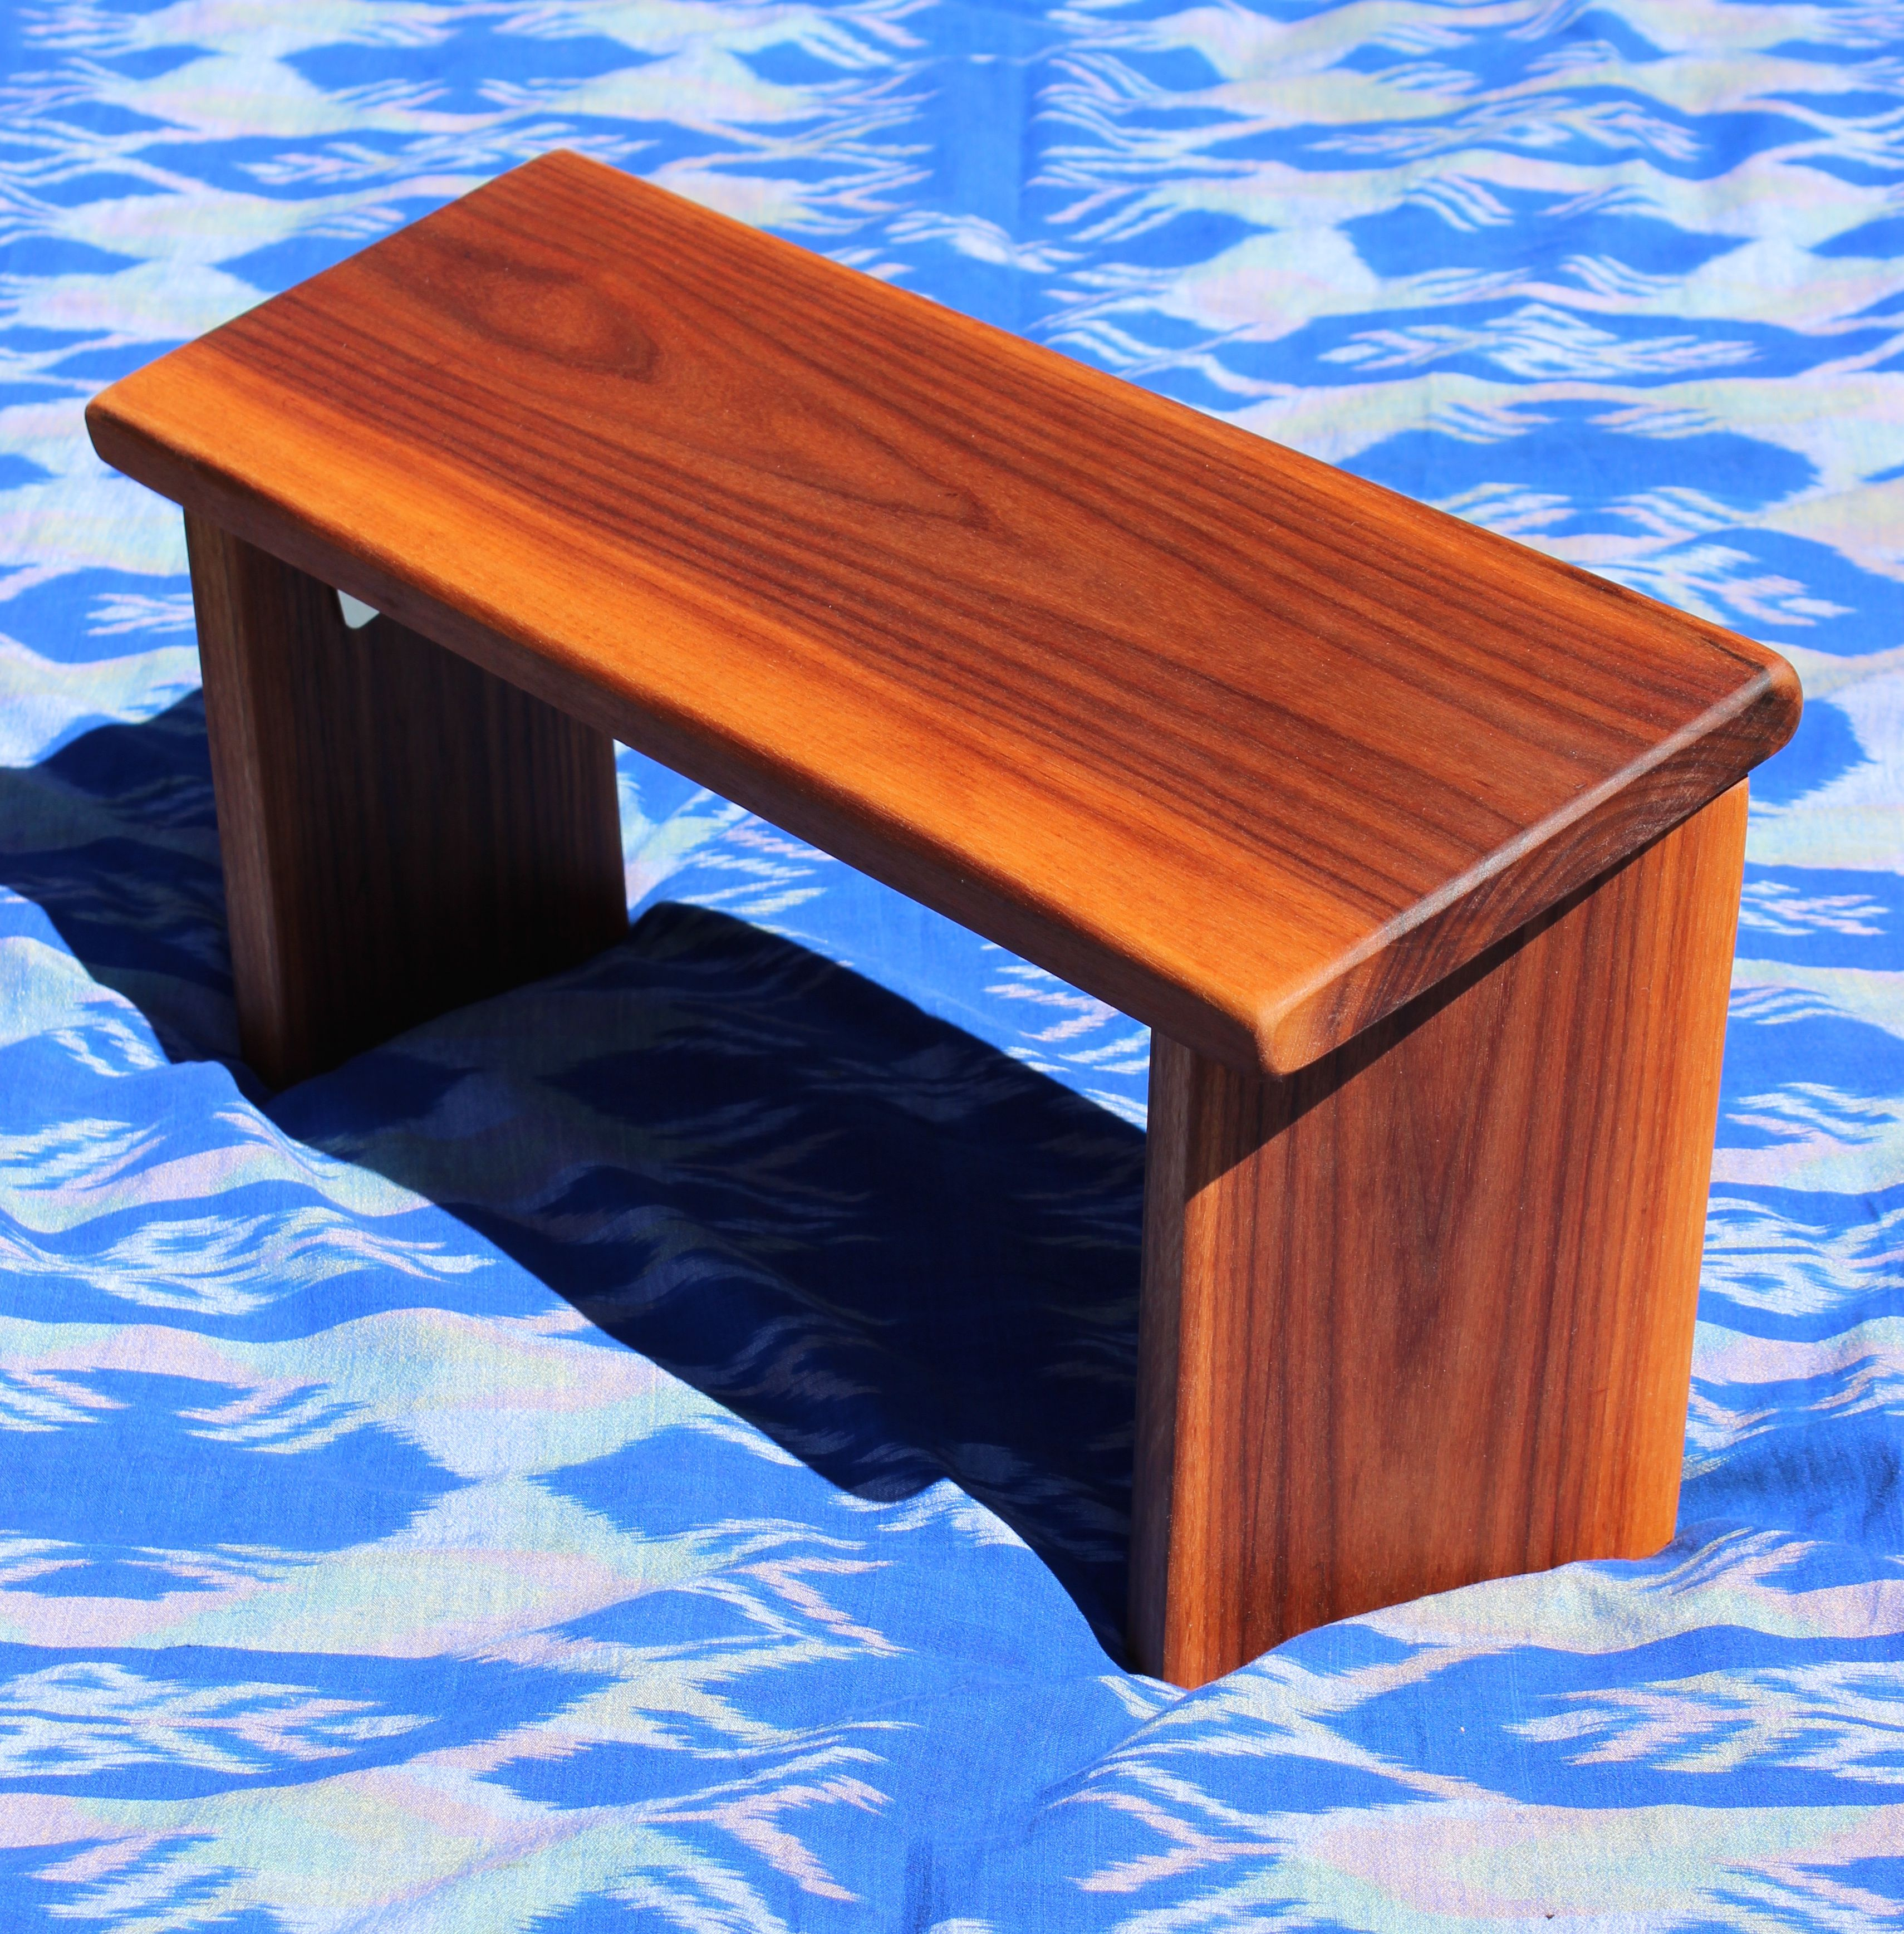 Buy A Hand Crafted Portable Meditation Bench With